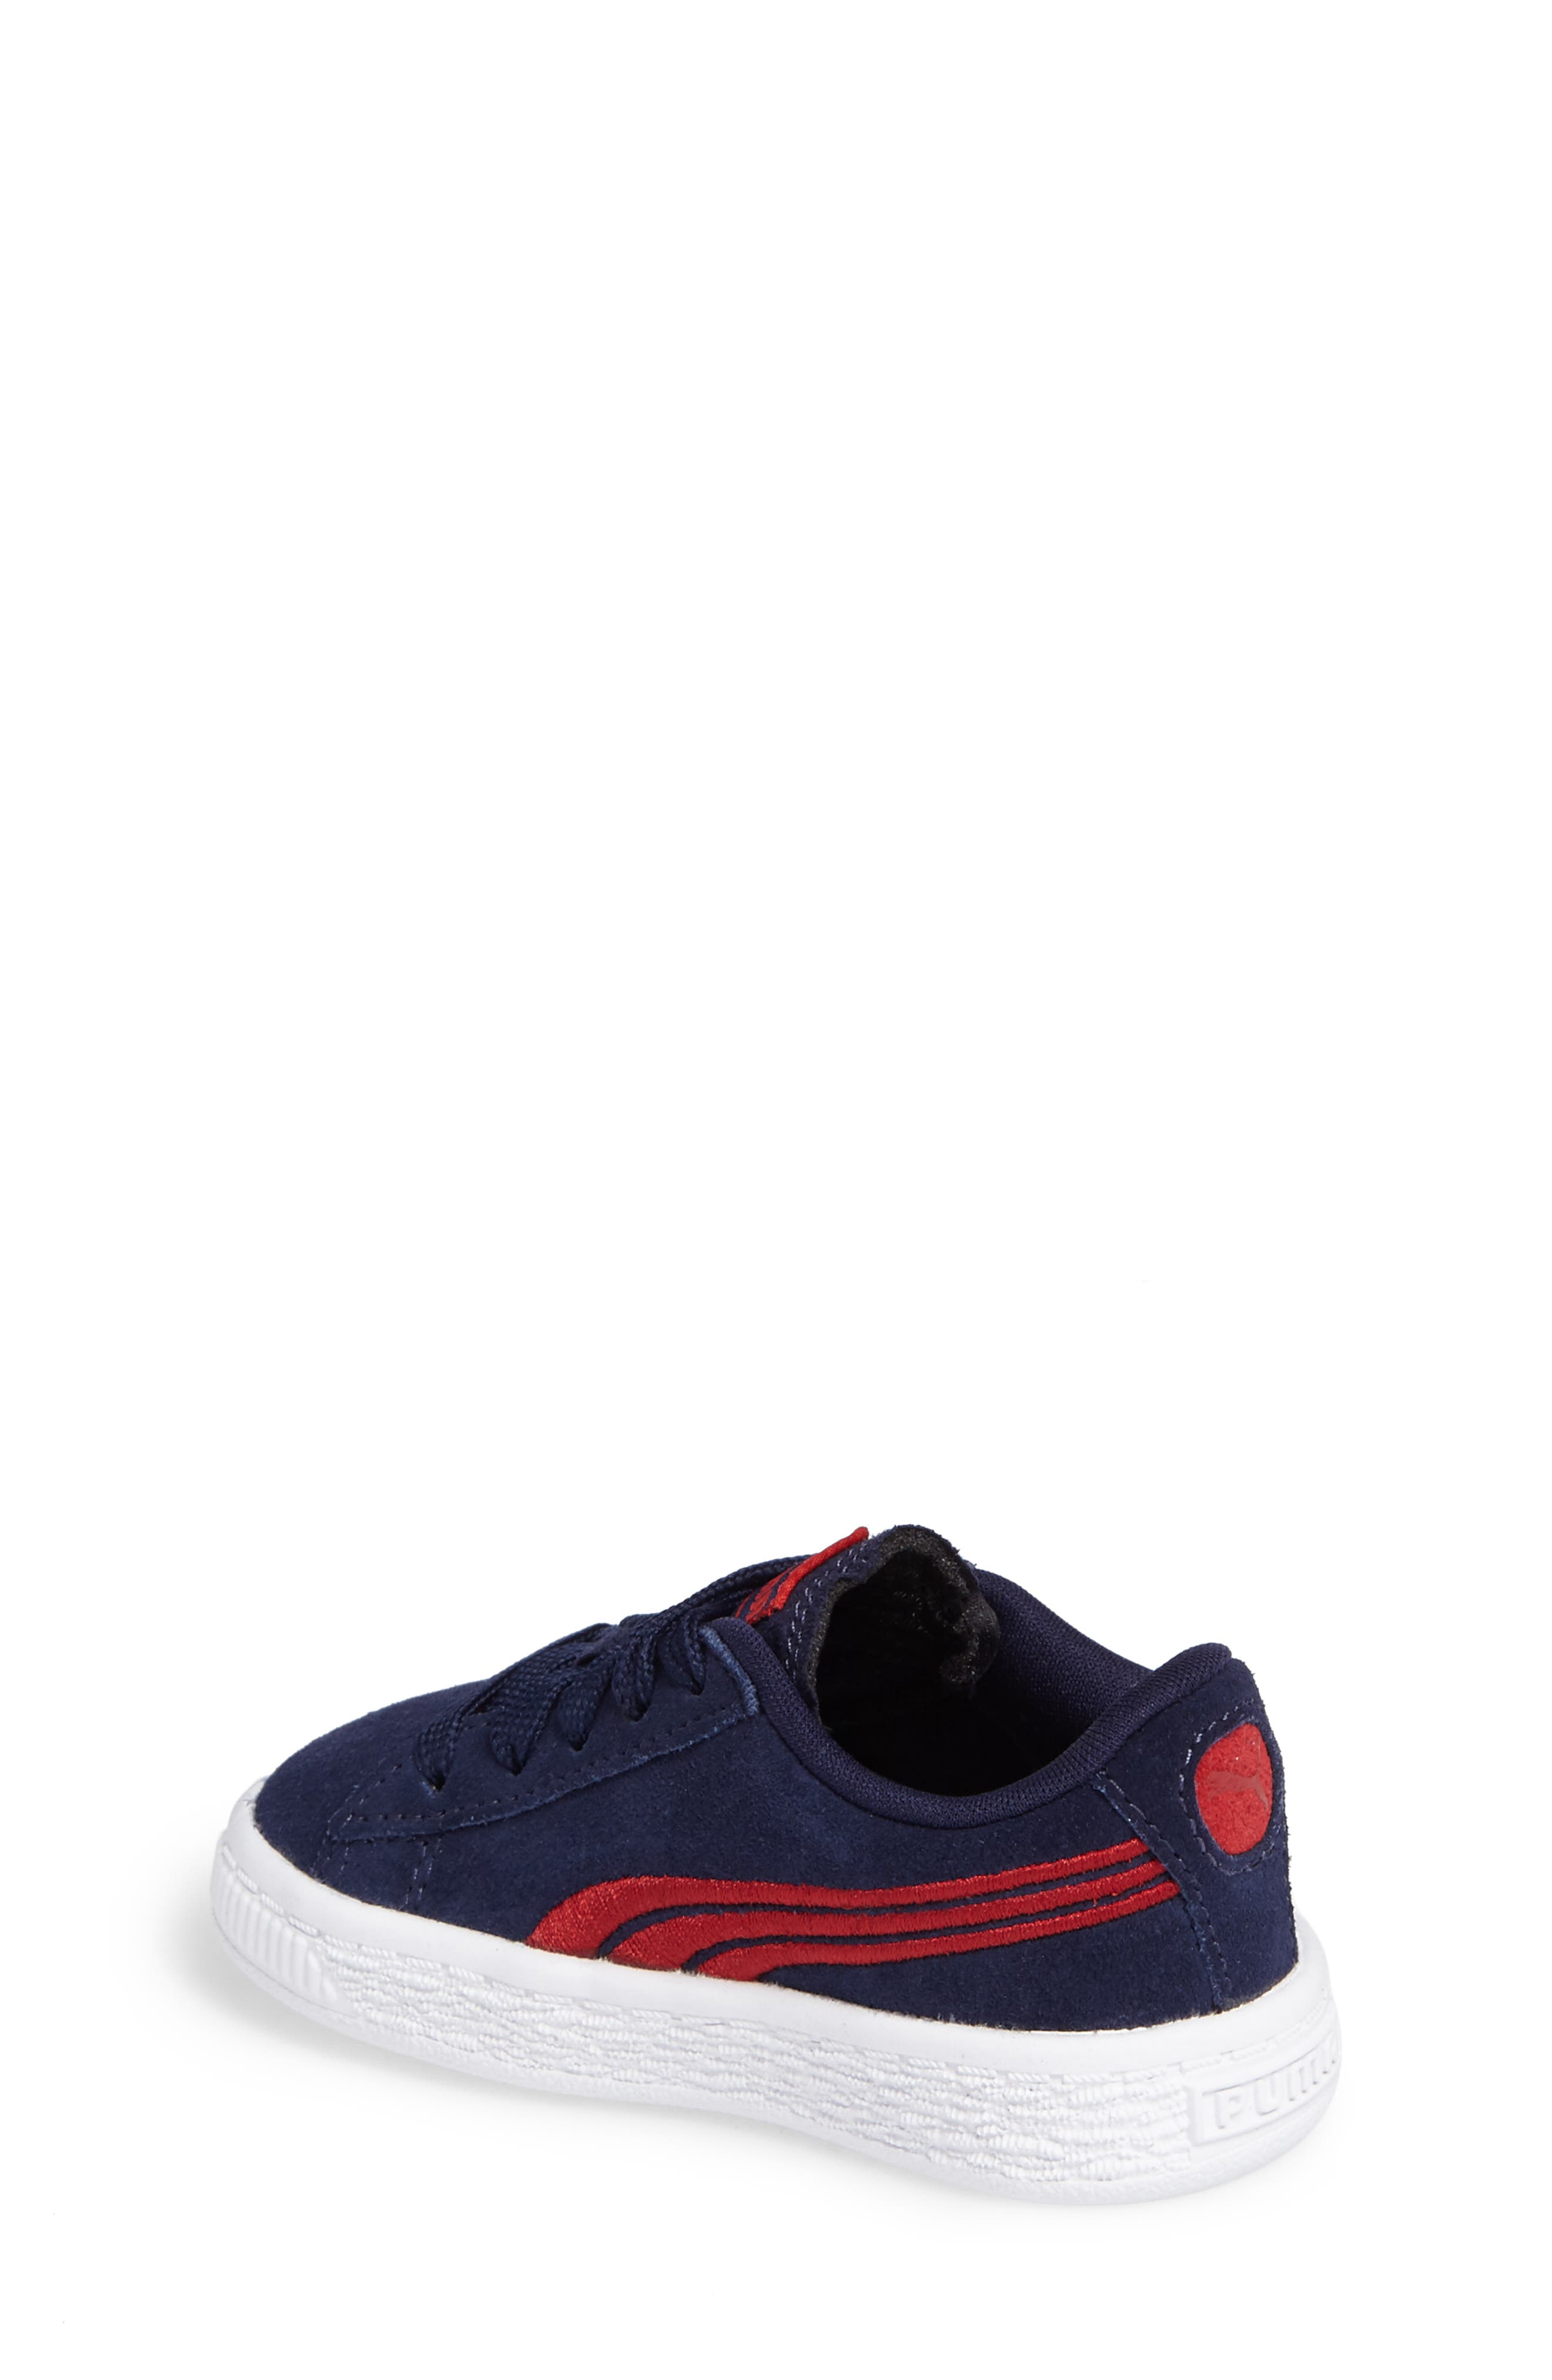 Suede Classic Sneaker,                             Alternate thumbnail 4, color,